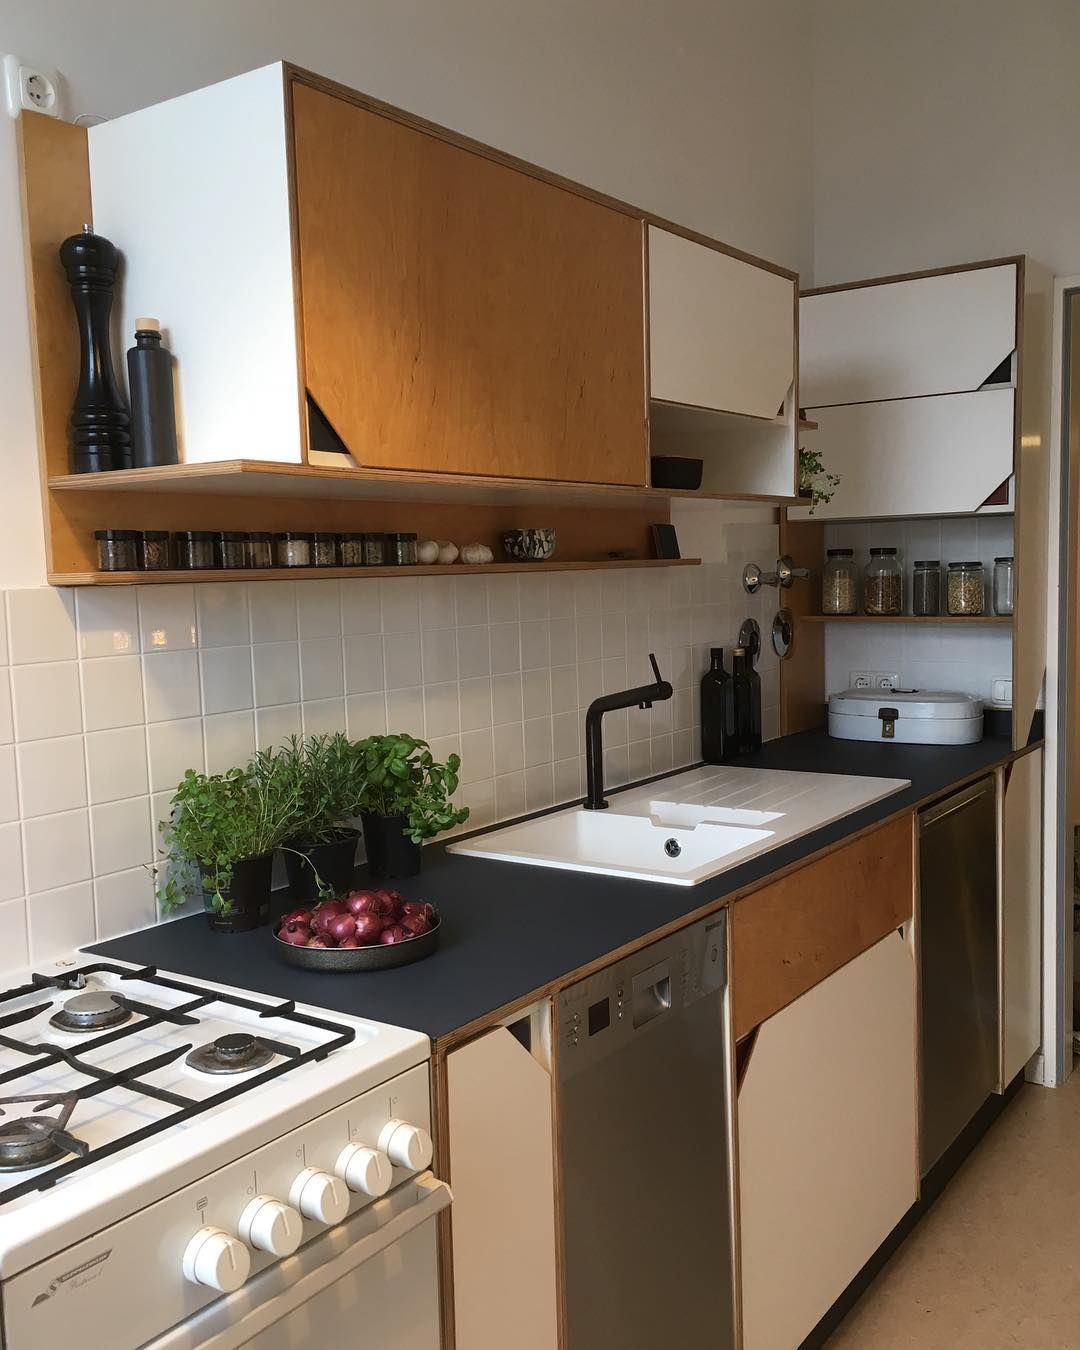 8 best small kitchen ideas 2020 photos and videos of small kitchen trends 2020 with images on kitchen decor trends id=62461